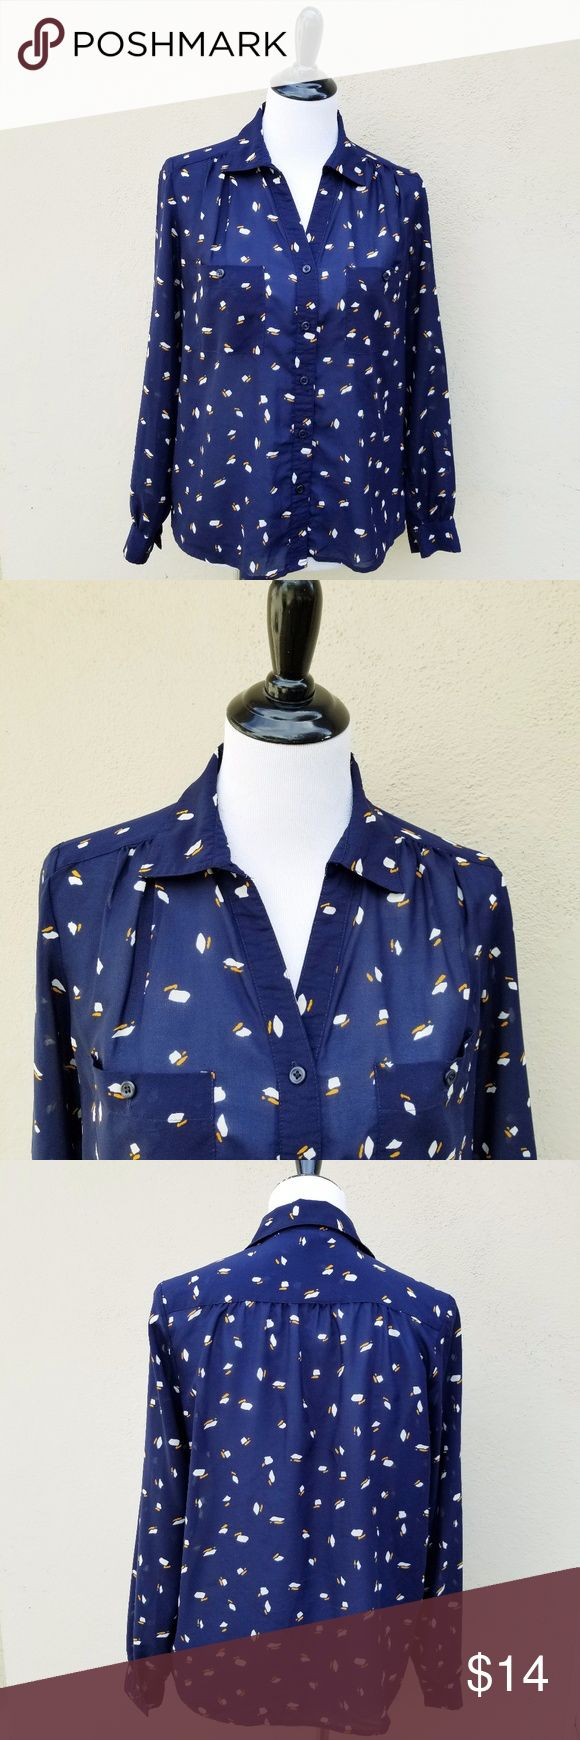 Sheer Navy Blue with Art Deco Pattern Button Up In Pristine Condition  This sheer navy blue with white and mustard yellow art deco pattern design button down has puckered sleeves and shoulders and is detailed with 2 front pockets.  100% polyester Forever 21 Tops Button Down Shirts